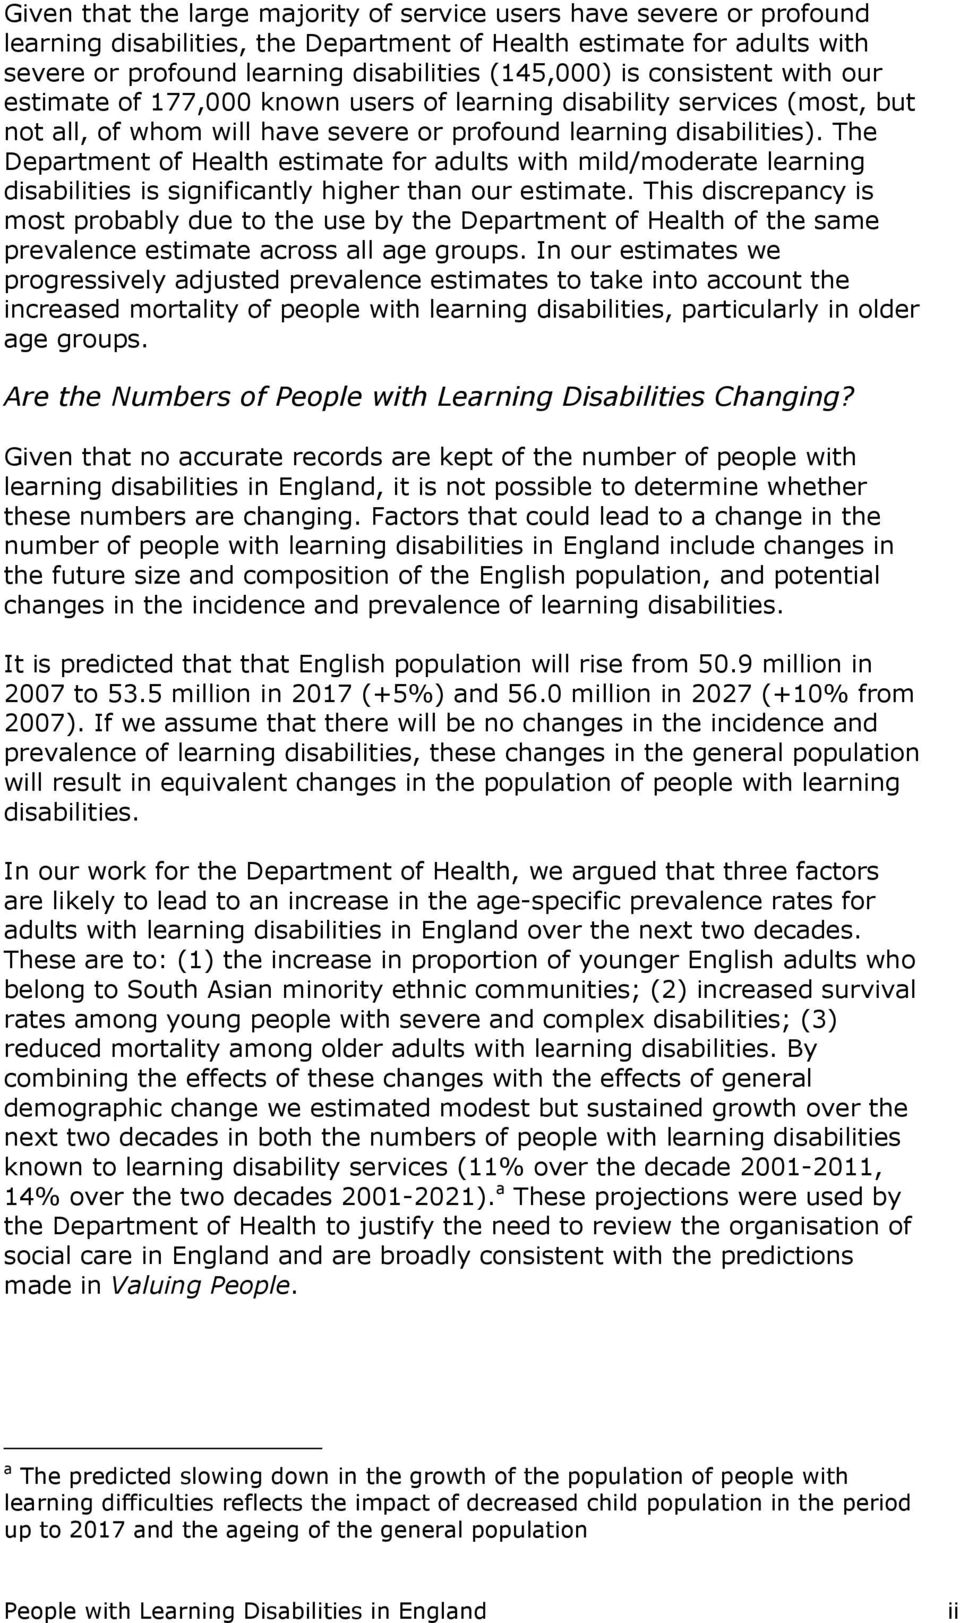 The Department of Health estimate for adults with mild/moderate learning disabilities is significantly higher than our estimate.